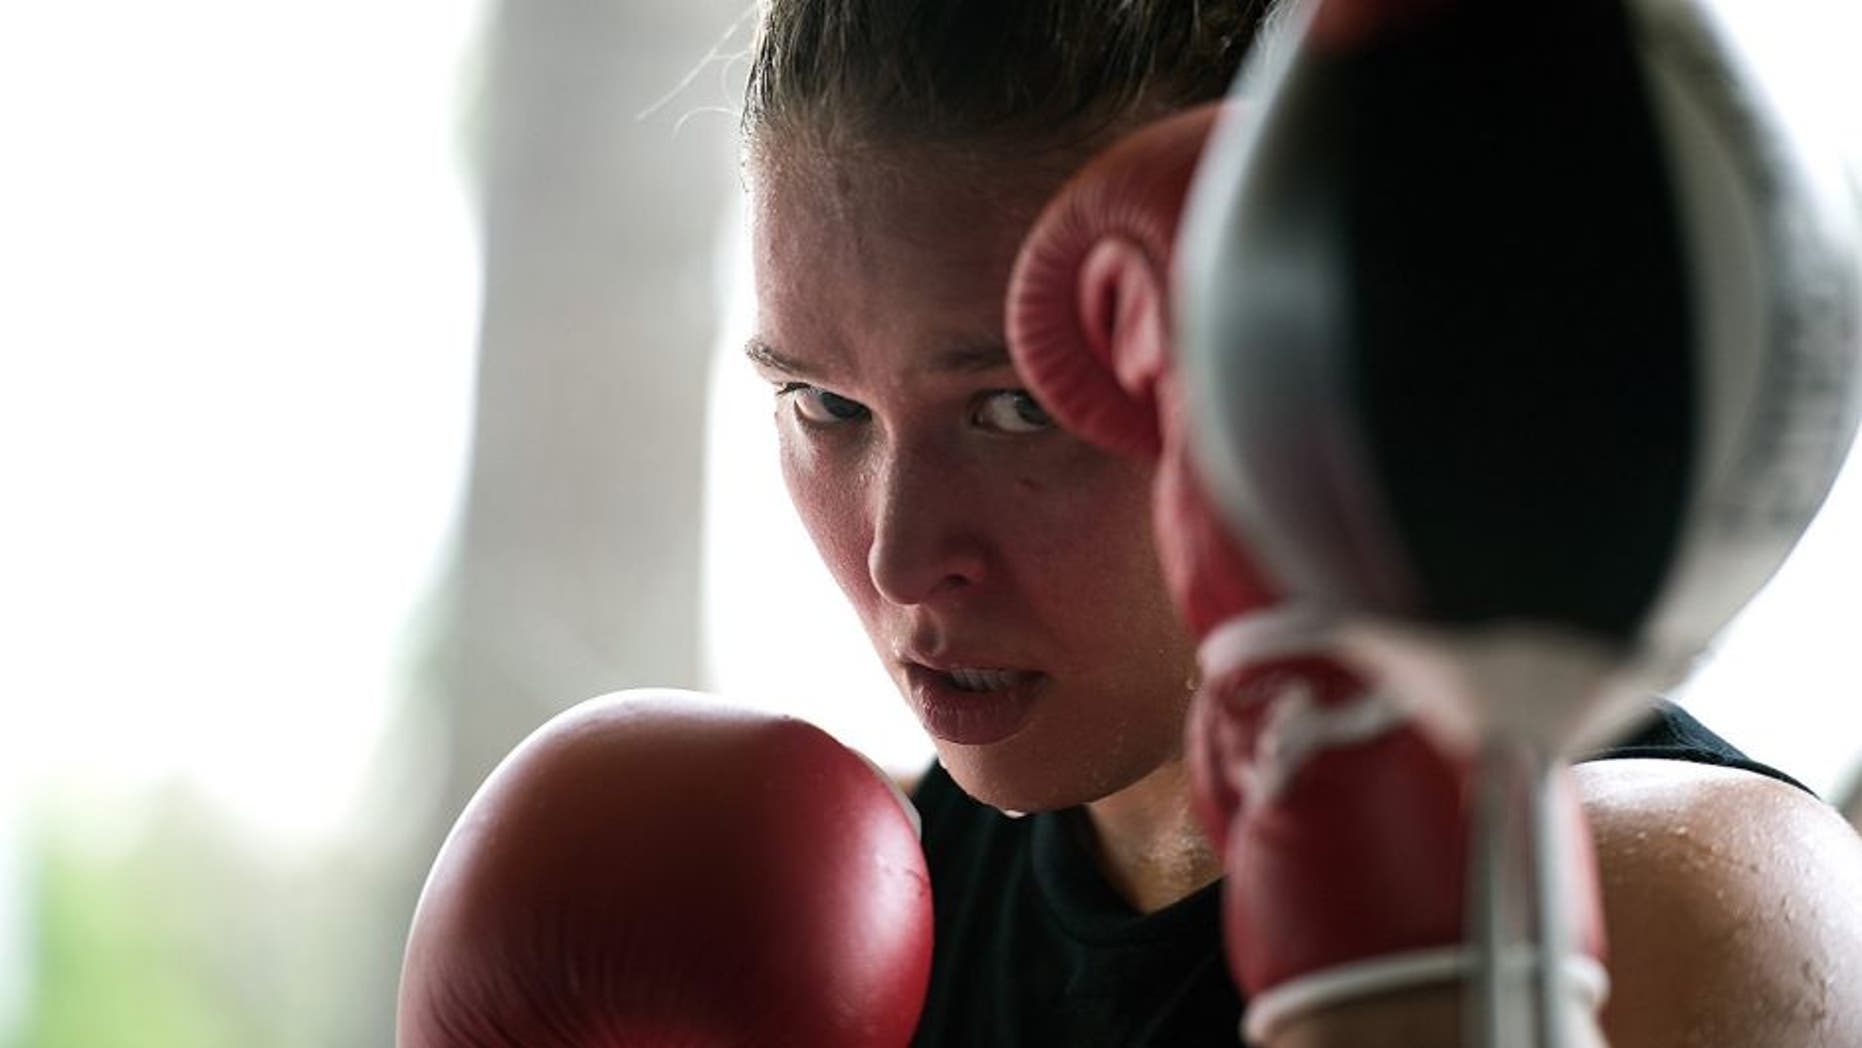 GLENDALE, CA - OCTOBER 27: UFC Bantamweight champion Ronda Rousey cools down after a workout during a media training session at the Glendale Fight Club on October 27, 2015 in Glendale, California. (Photo by Brandon Magnus/Zuffa LLC/Zuffa LLC via Getty Images)